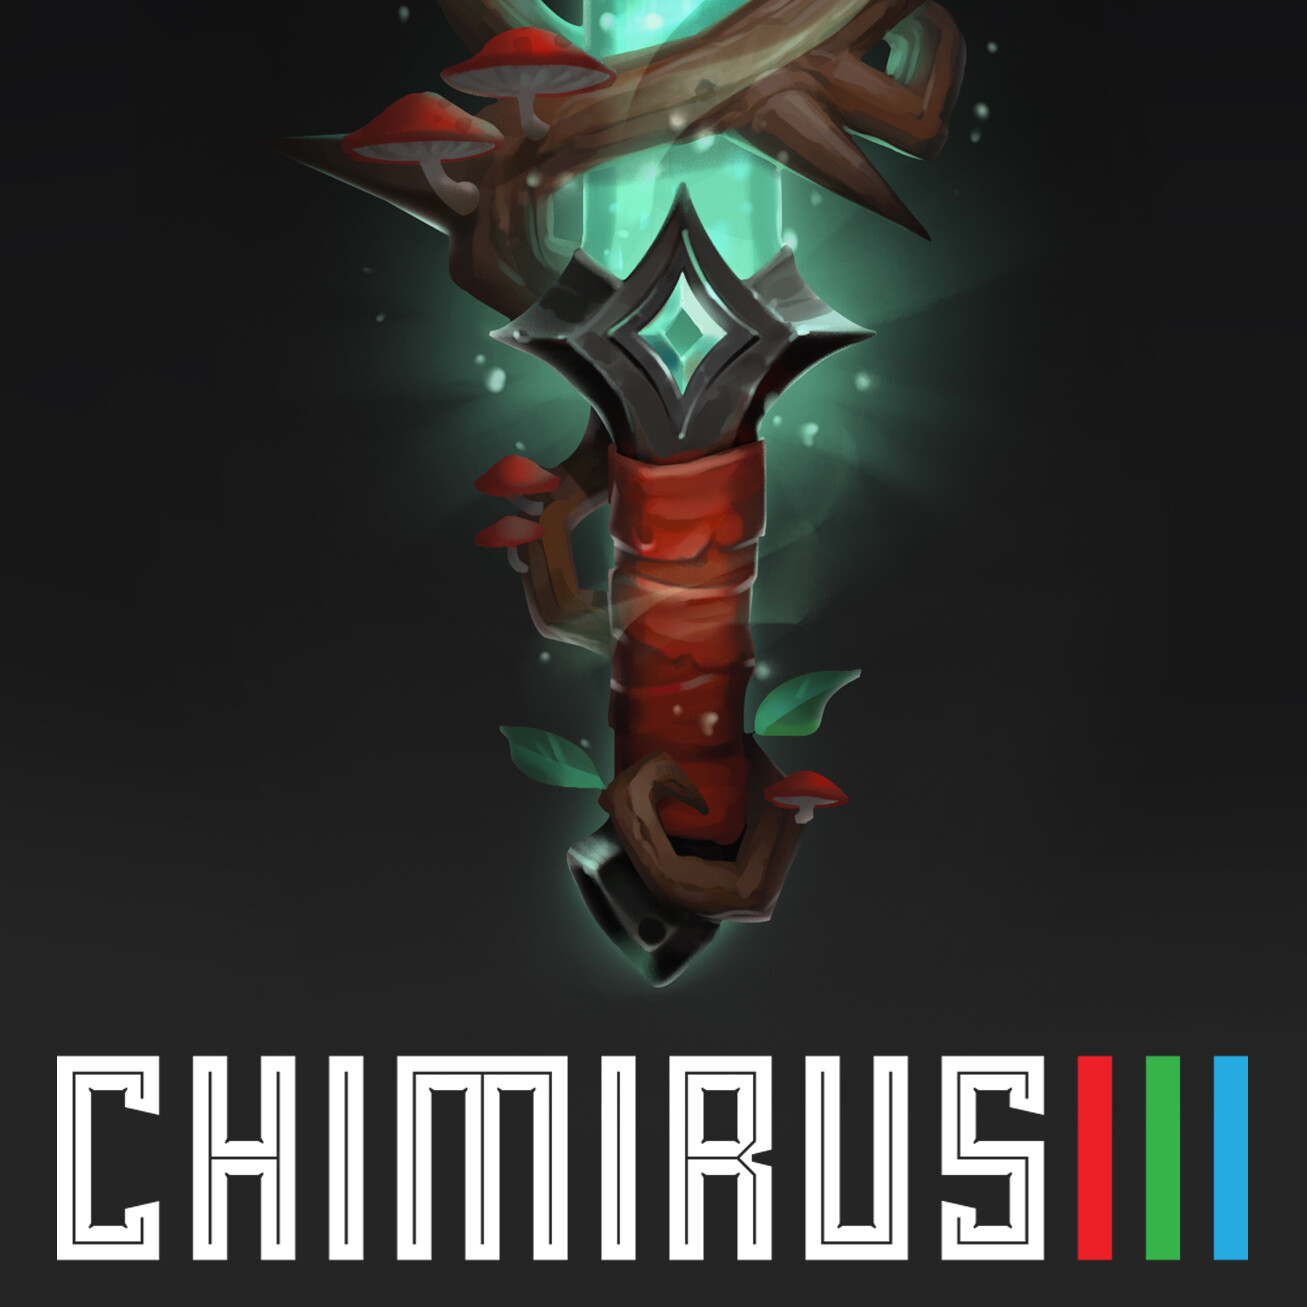 Chimirus Prop Demo: Forest's Blade